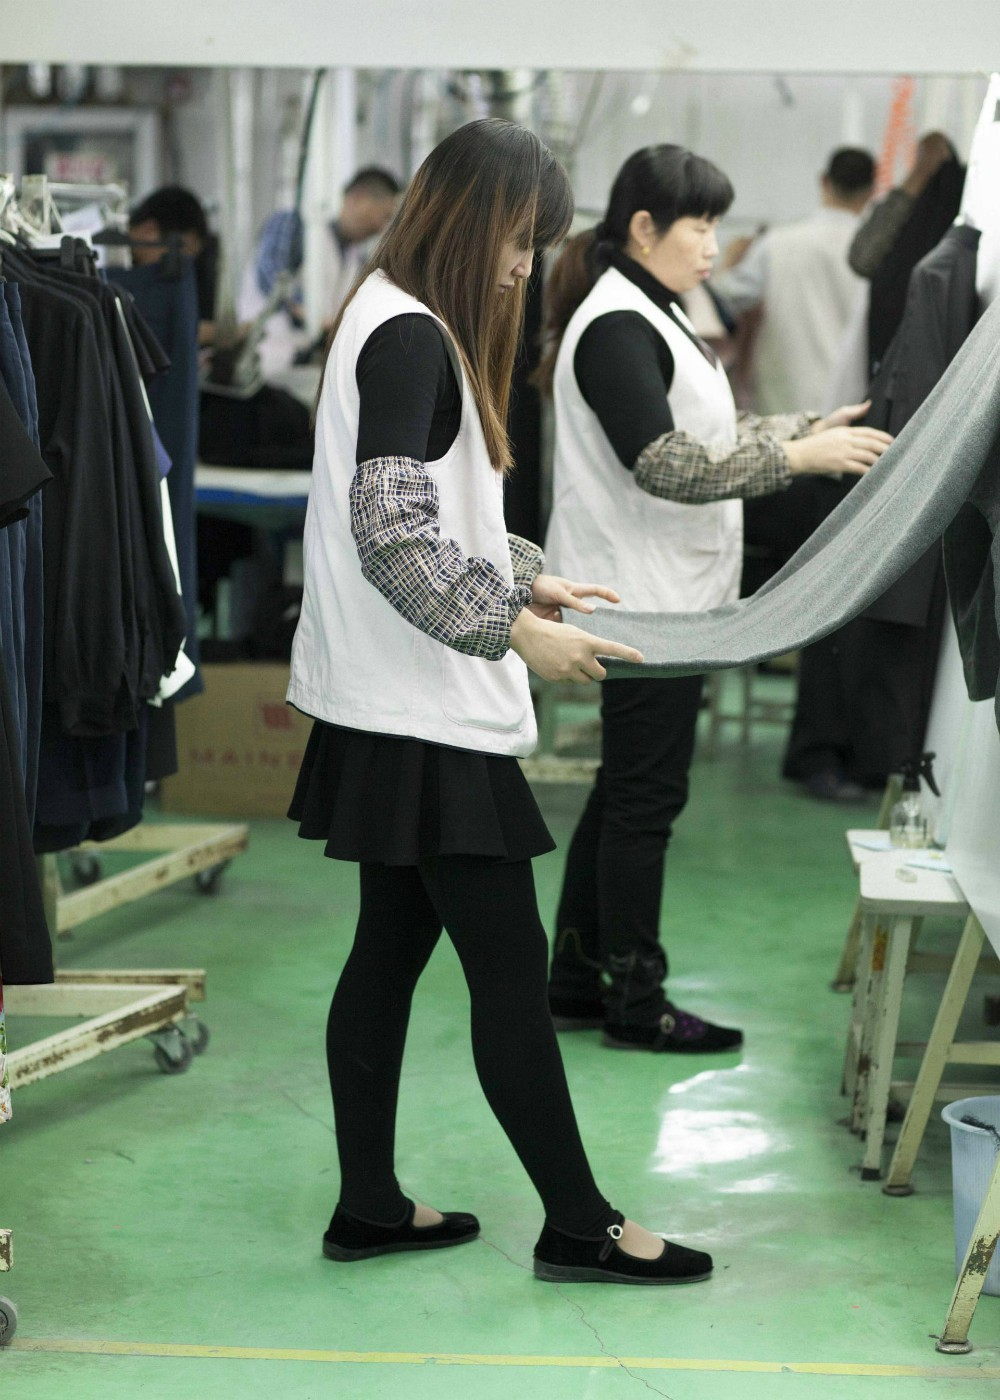 Workers at Everlane's partner factory in China, Suzhou Marconi Garment Co., Ltd.